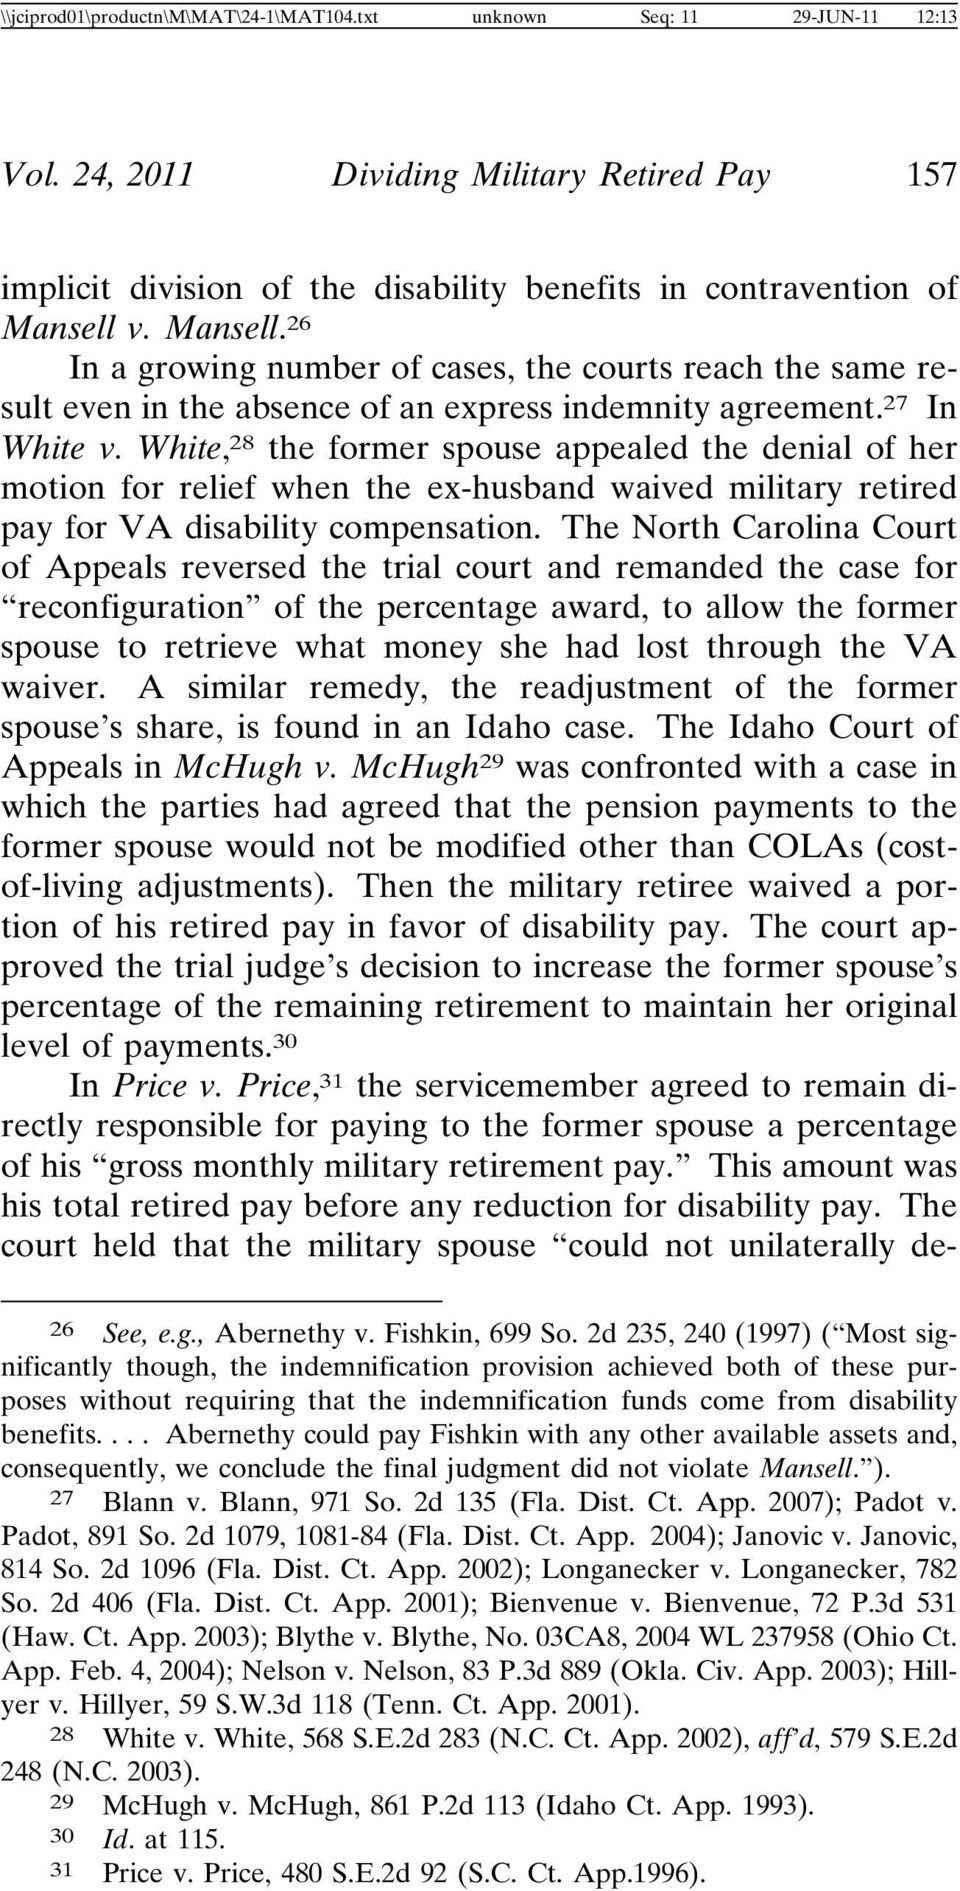 Dividing Military Retired Pay: Disability Payments and the Puzzle of